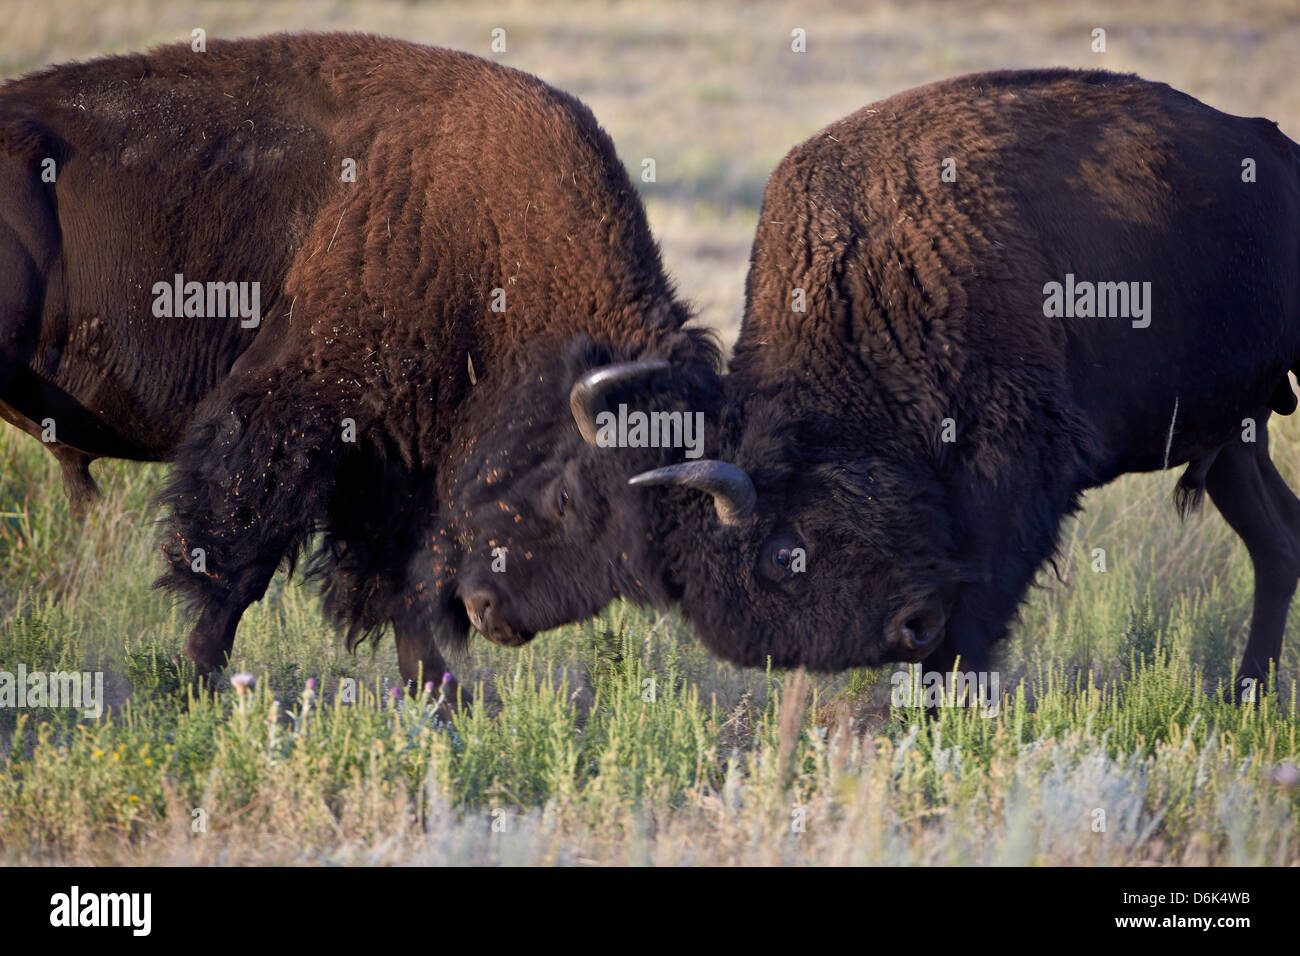 Bison (Bison bison) bulls sparring, Custer State Park, South Dakota, United States of America, North America Stock Photo